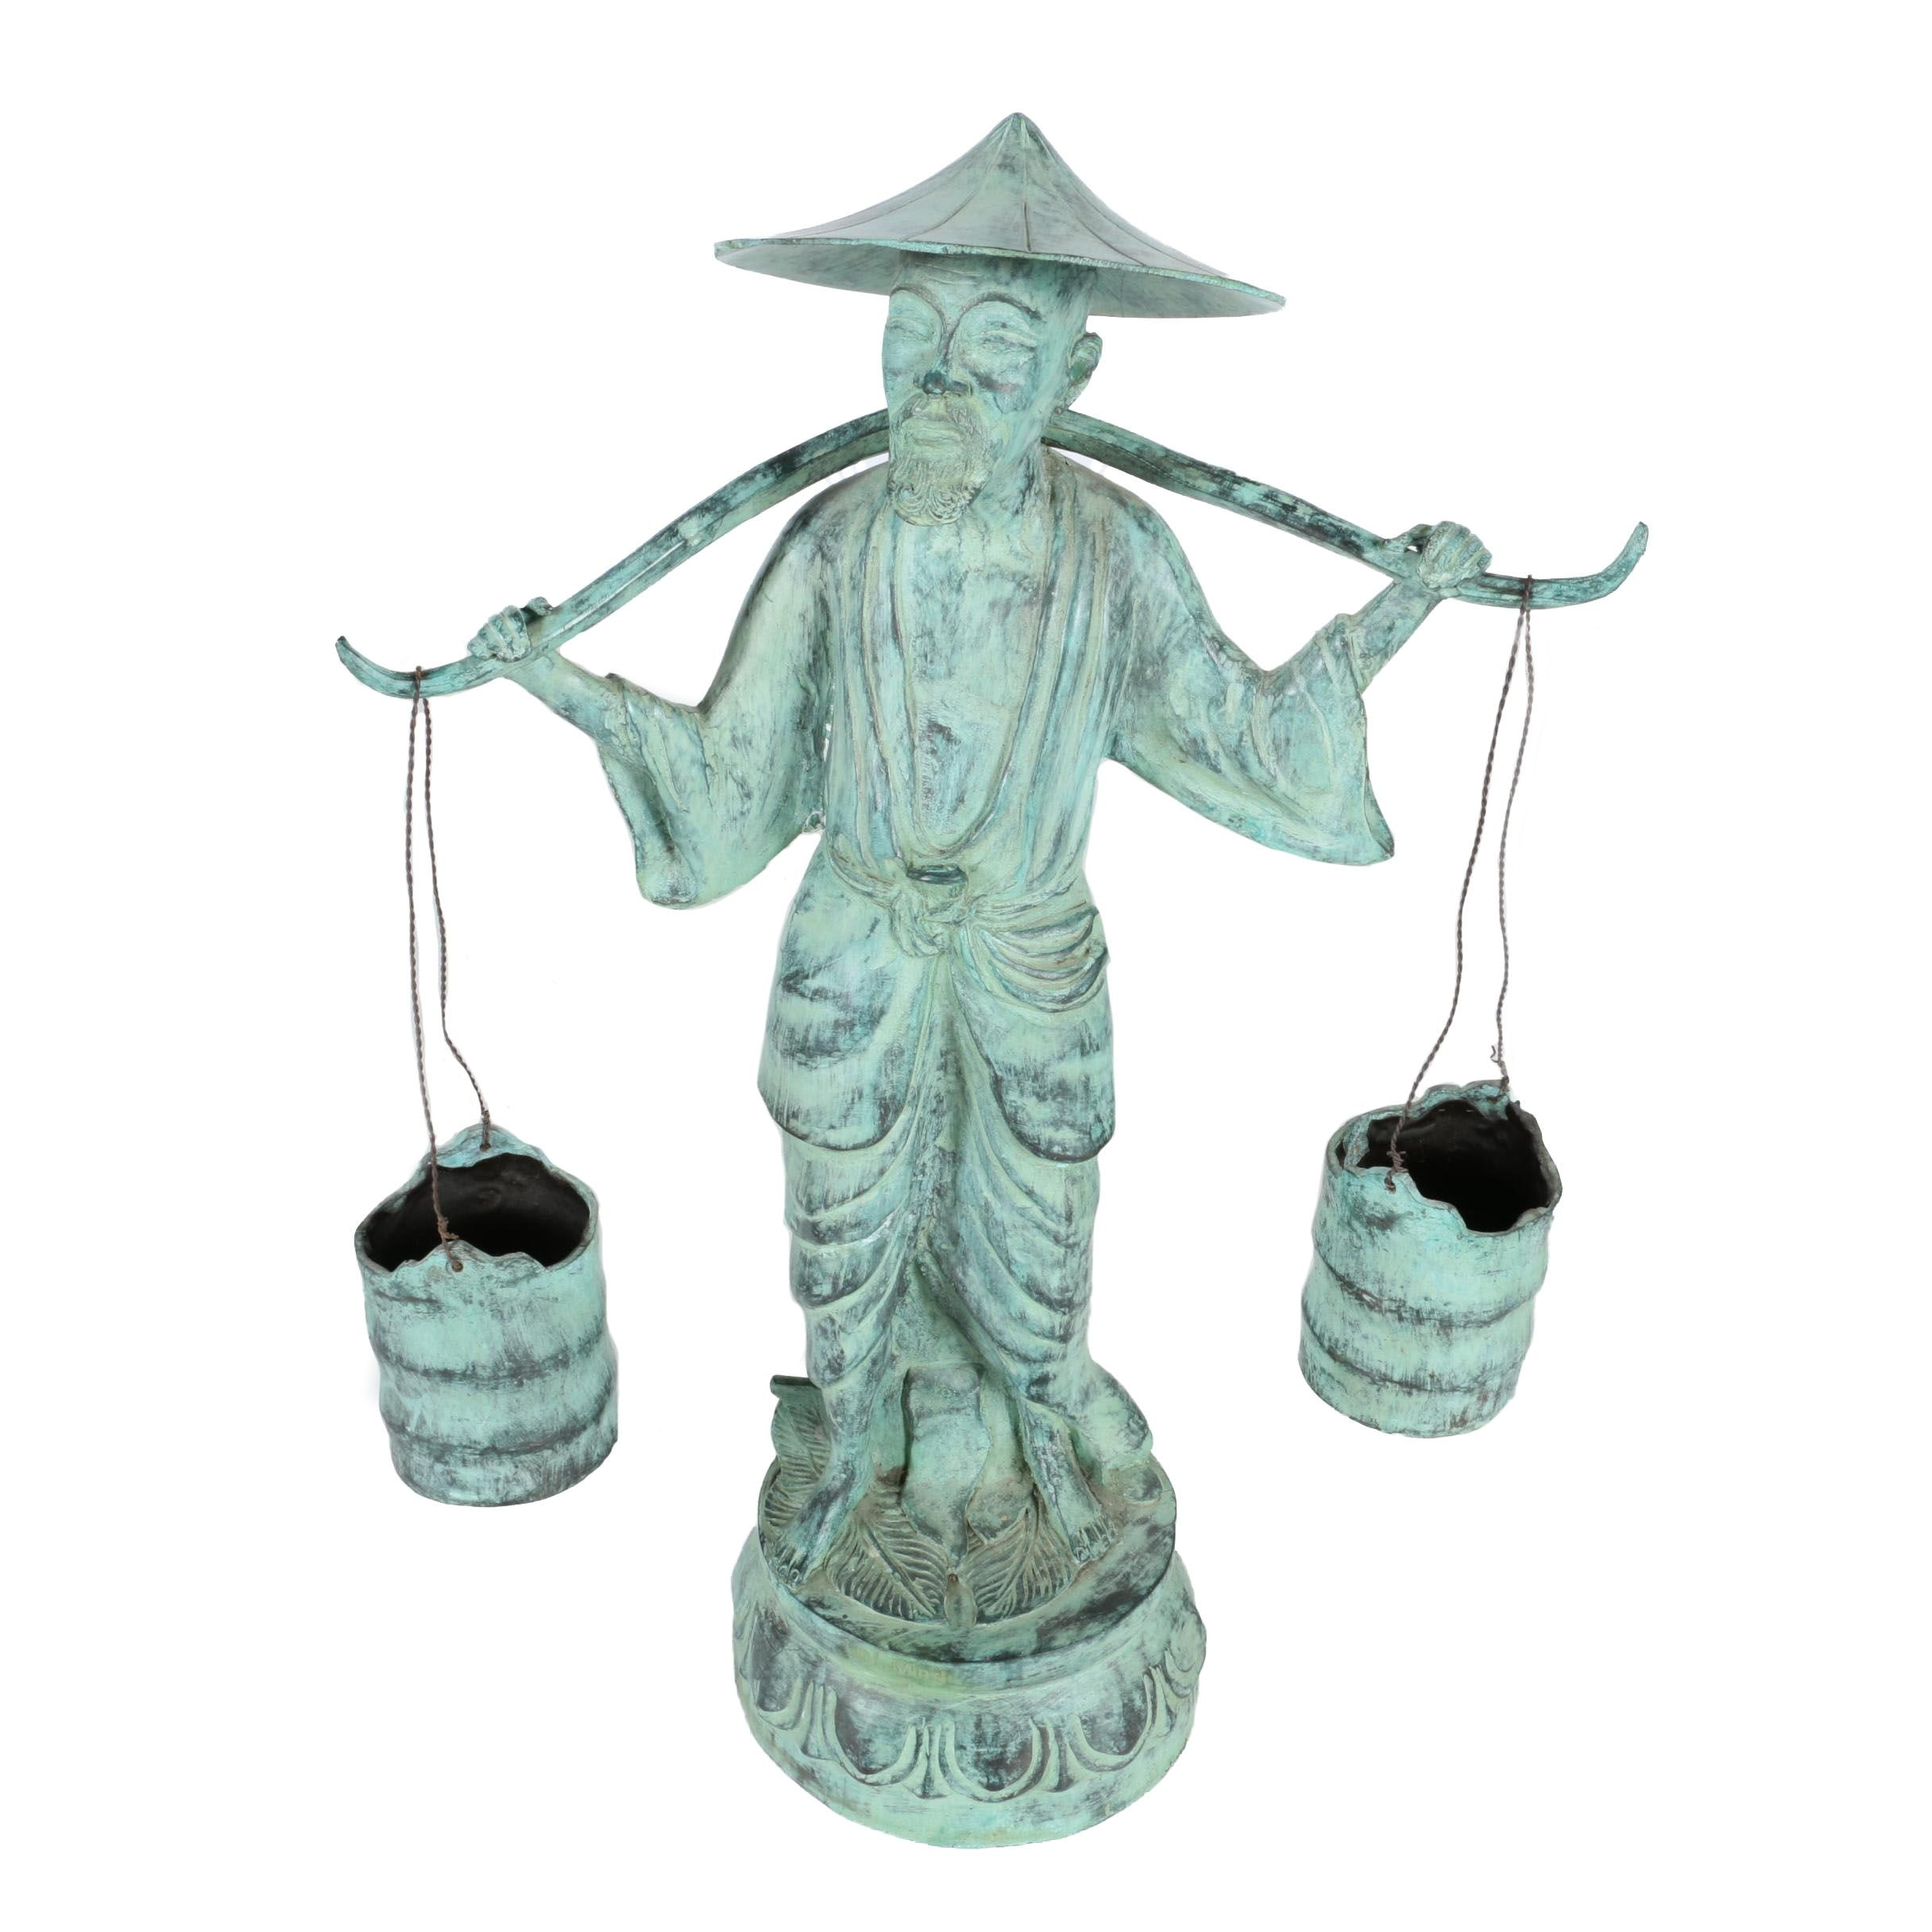 Brass Figurine of an Asian Man Carrying Buckets